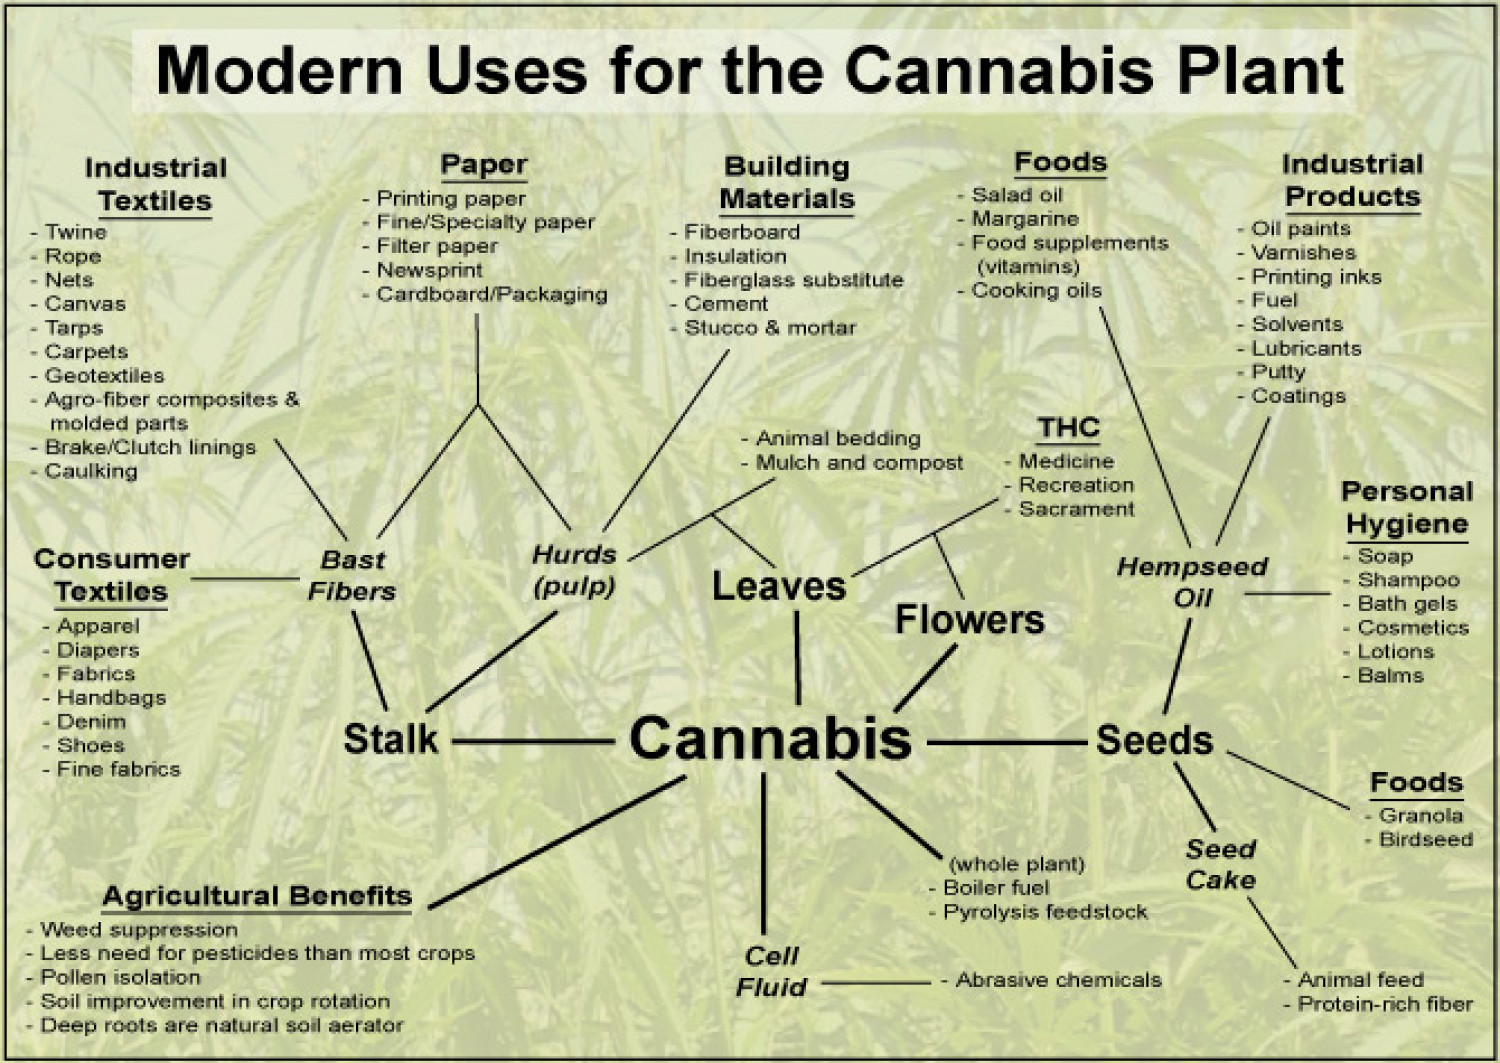 diagram of modern periodic table industrial wiring symbols uses for the cannabis plant | visual.ly